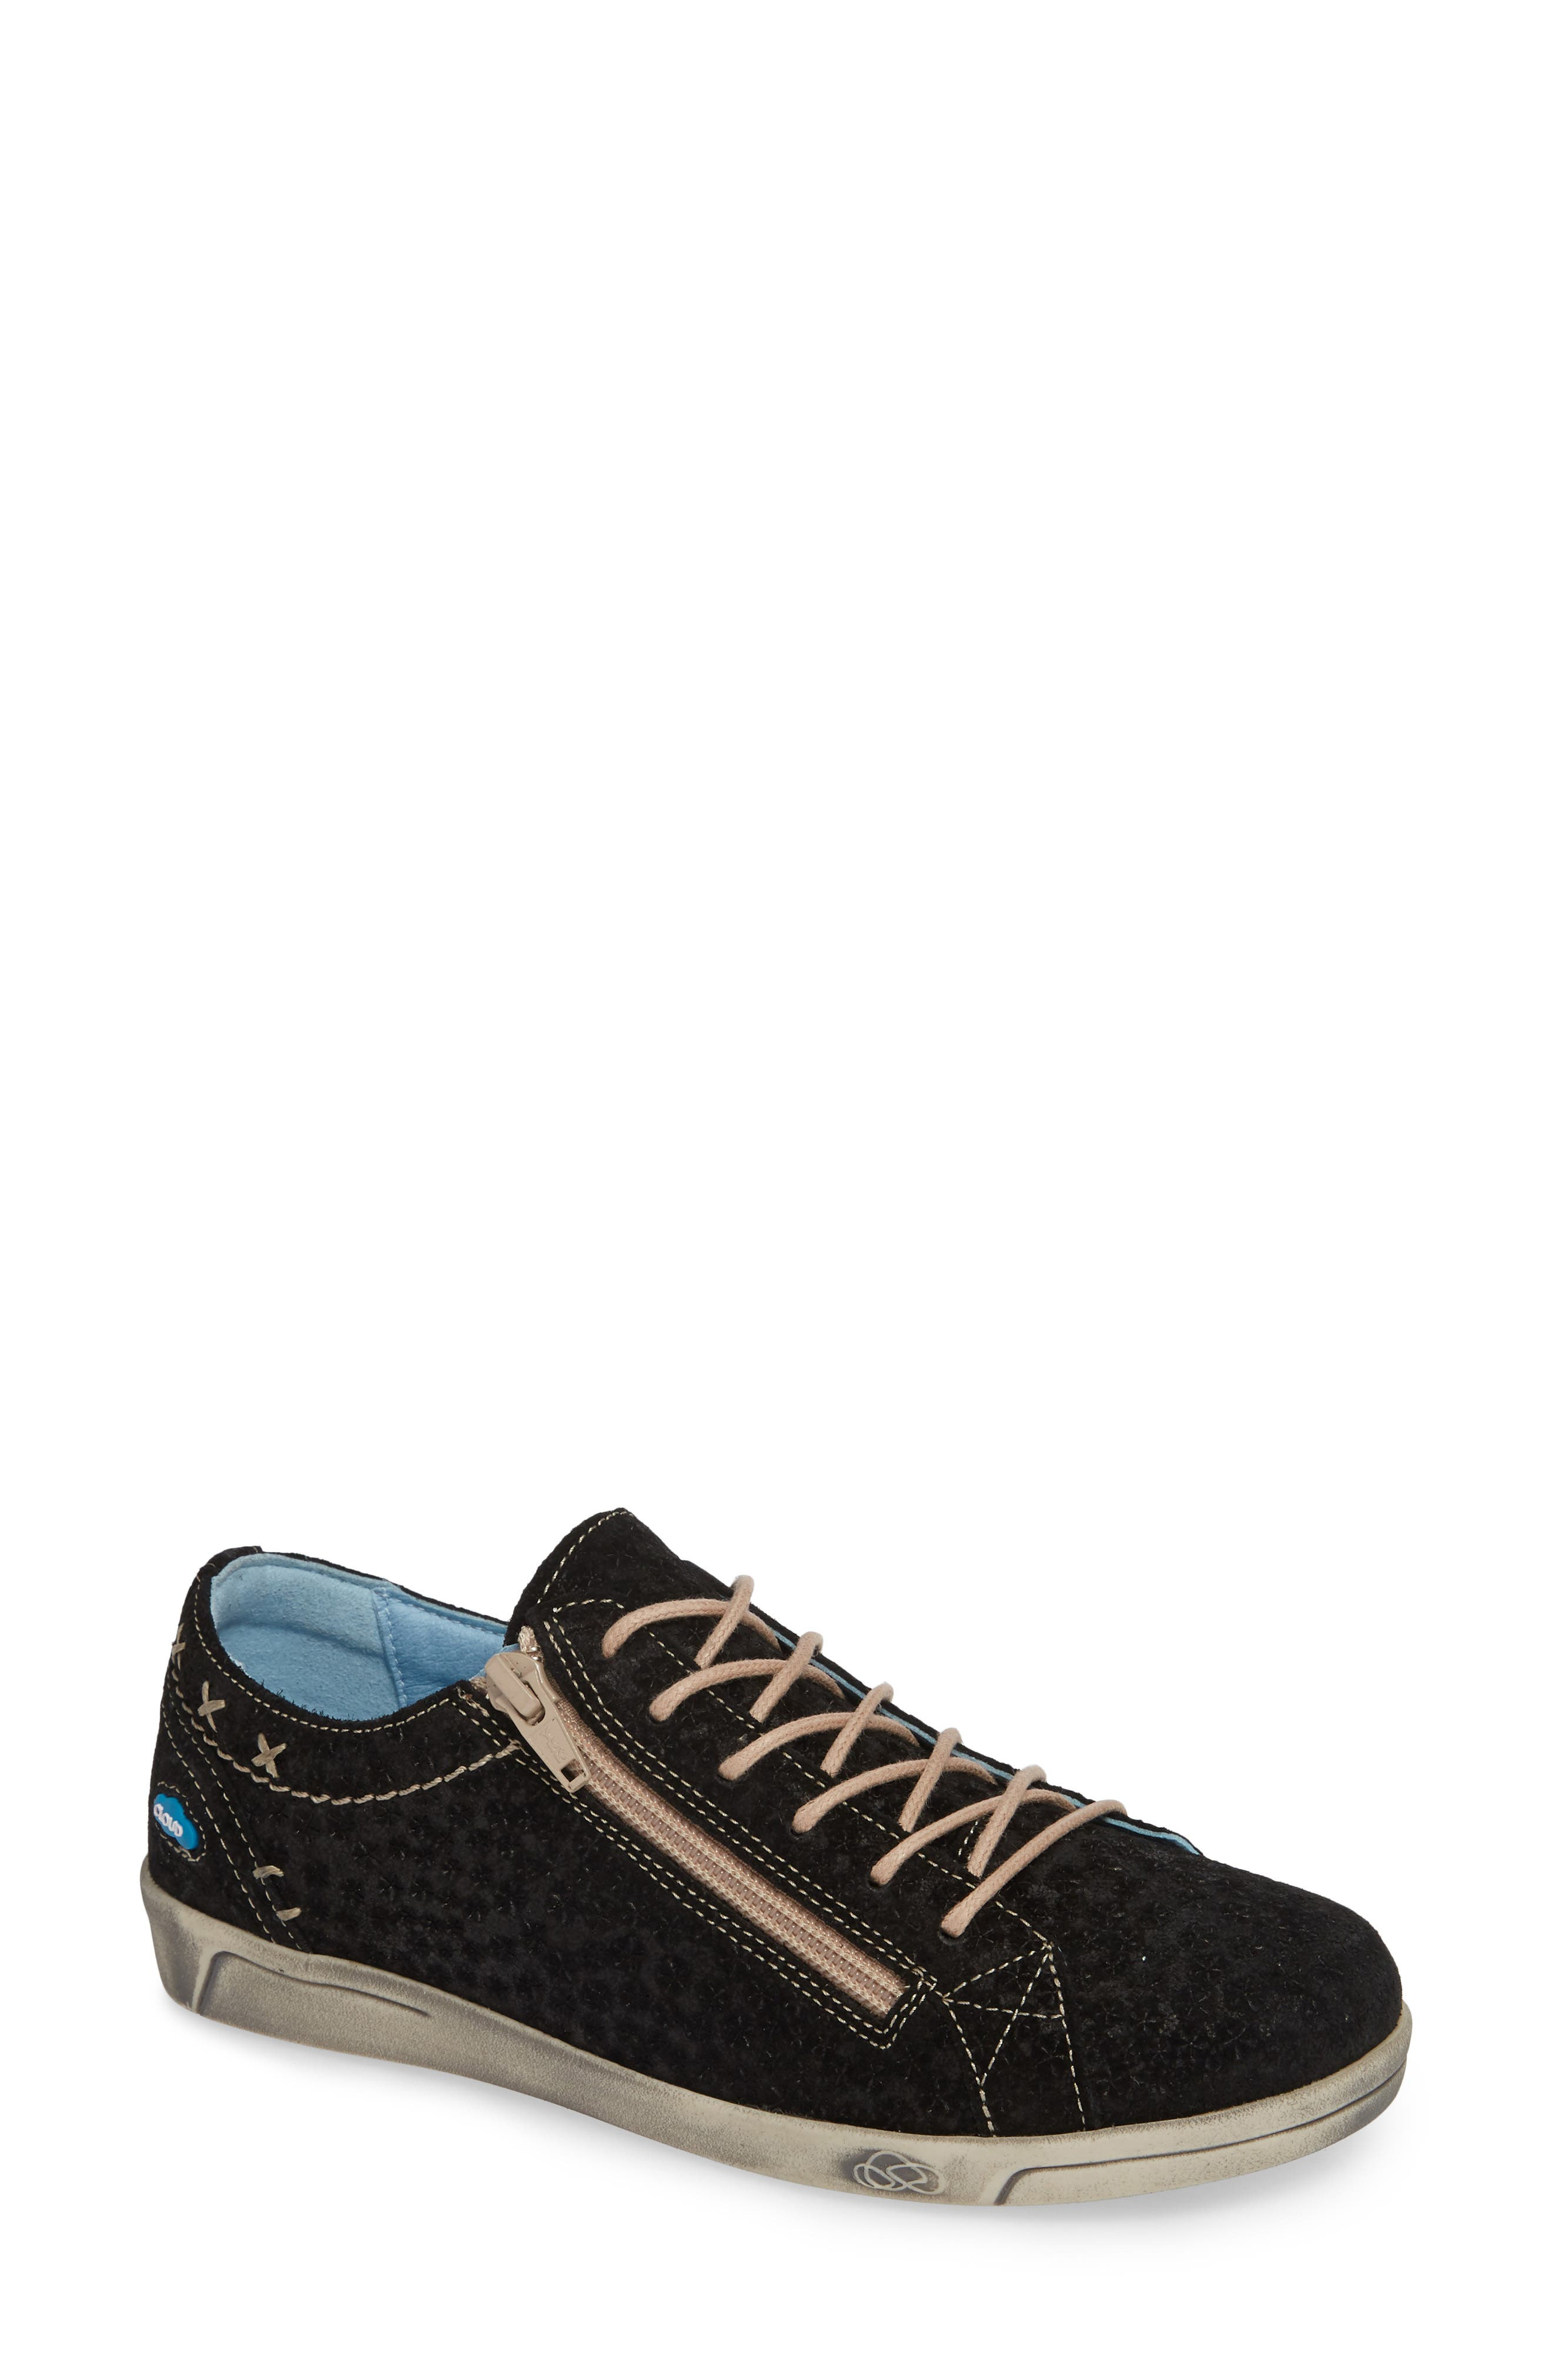 Aika Star Perforated Sneaker,                         Main,                         color, BLACK PERF LEATHER